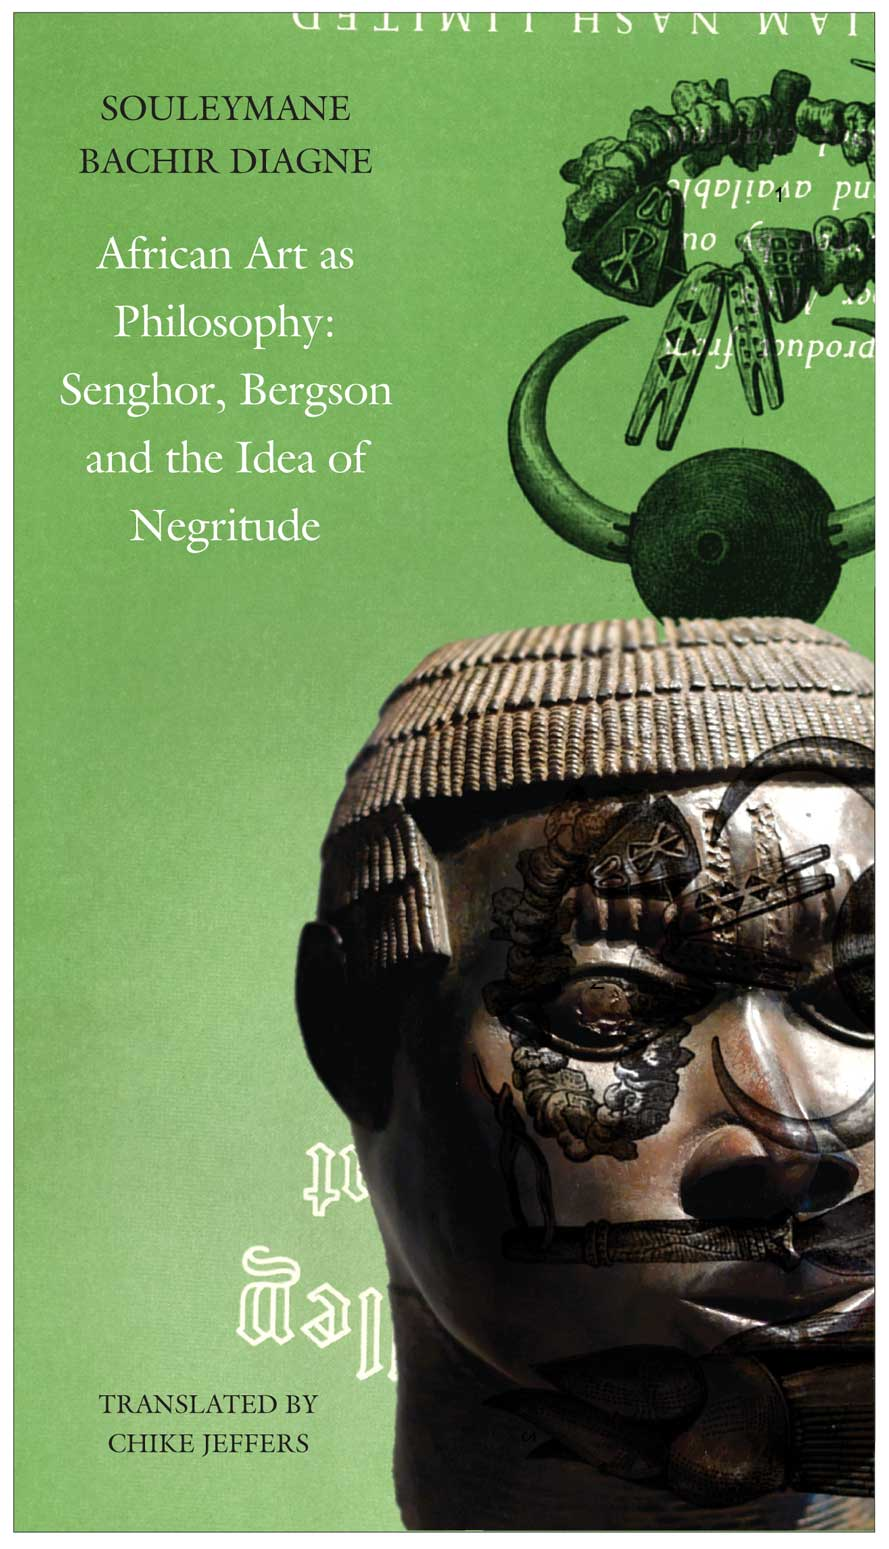 African Art as Philosophy: Senghor, Bergson and the Idea of Negritude by Souleymane Bachir Diagne | Seagull Books